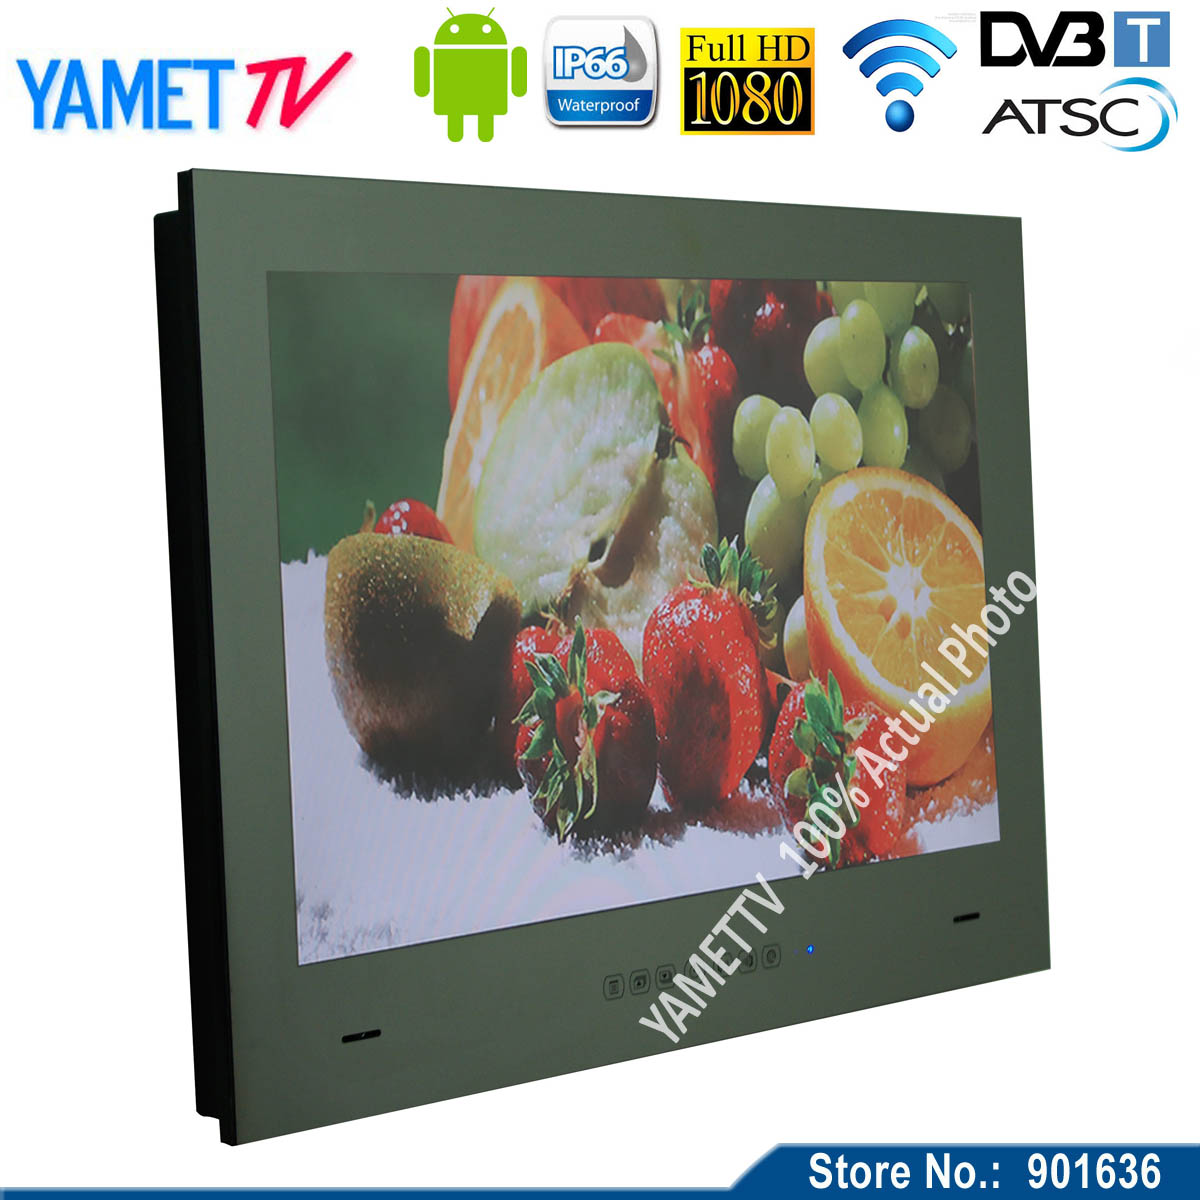 Телевизор Yamet 27 WiFi Full HD 1080P Android 4.2 /tv YMT-B27JM телевизор 28 дюймов full hd